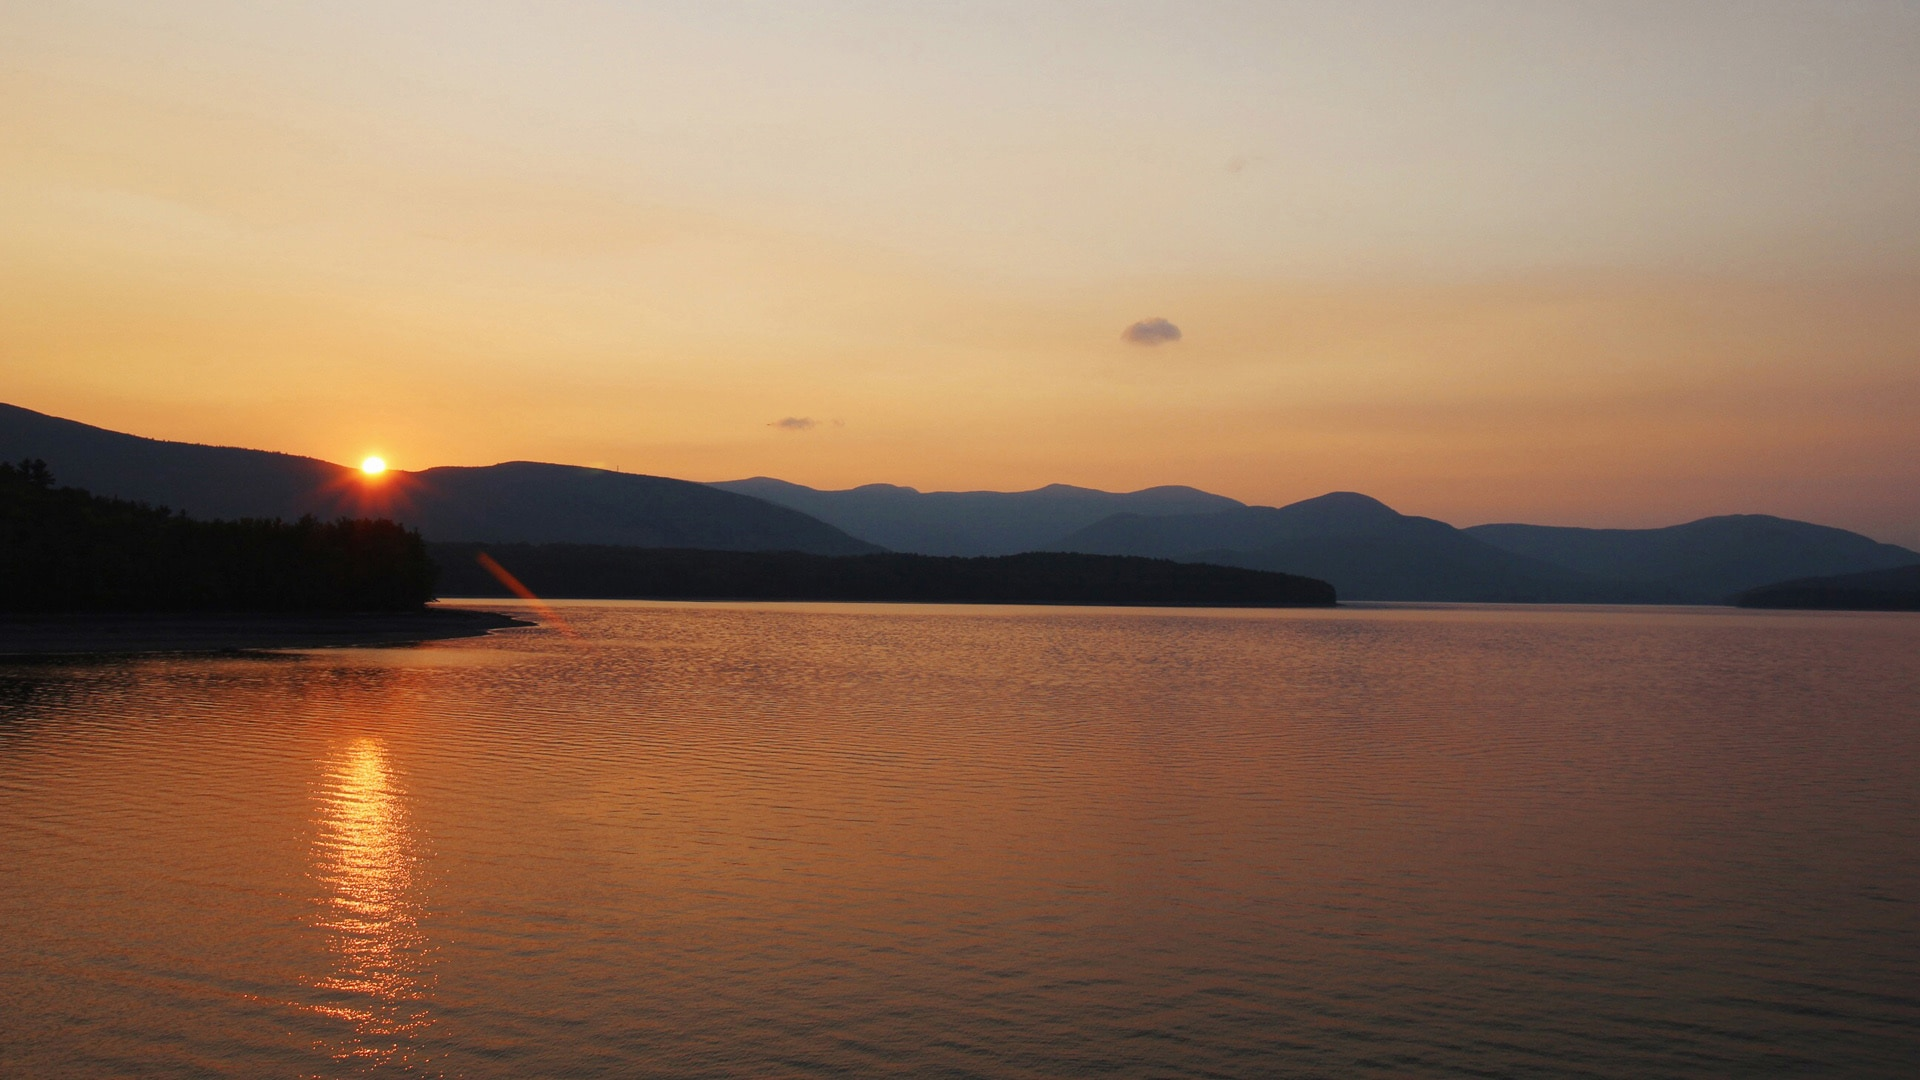 Weekend Getaway to Catskill Mountains, New York